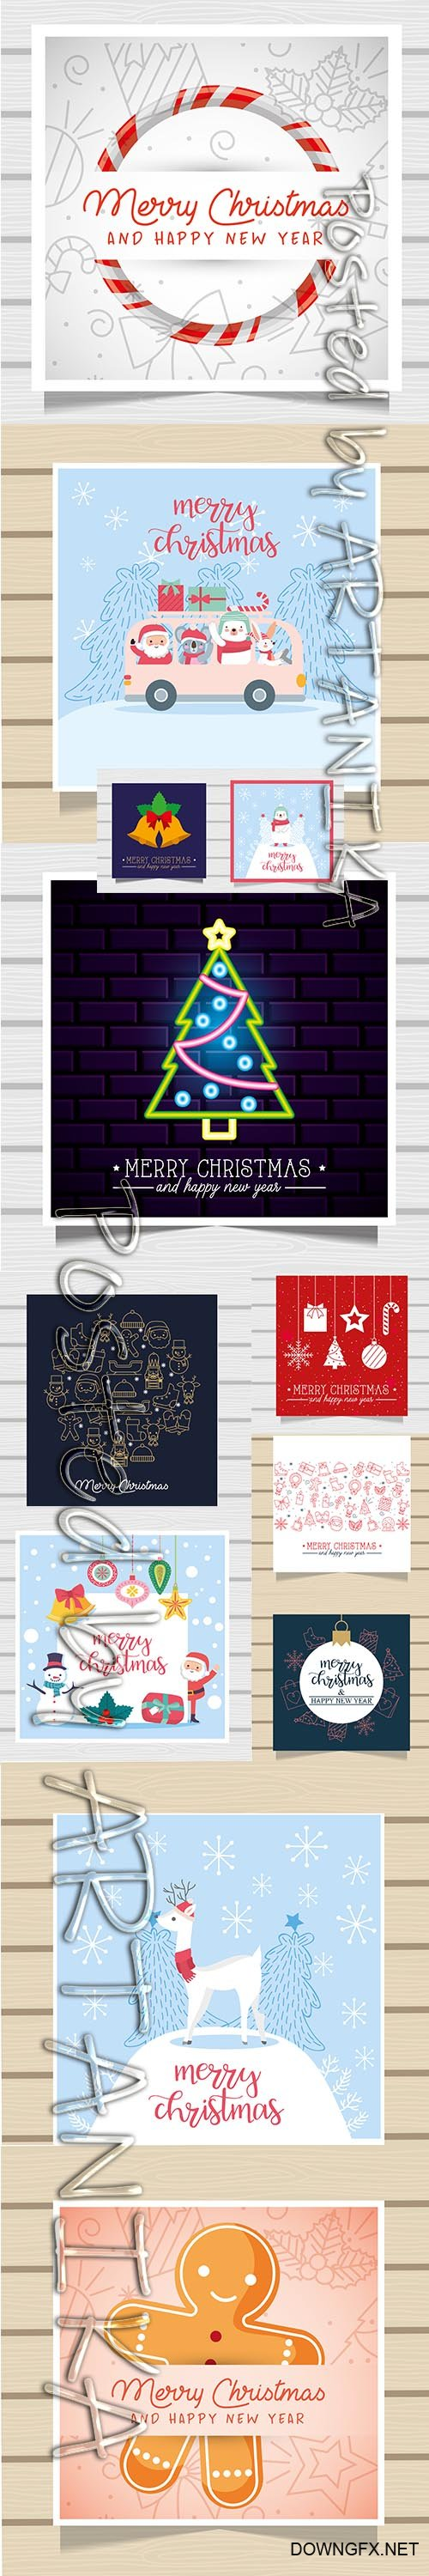 Merry Christmas Card and Backgrounds Set